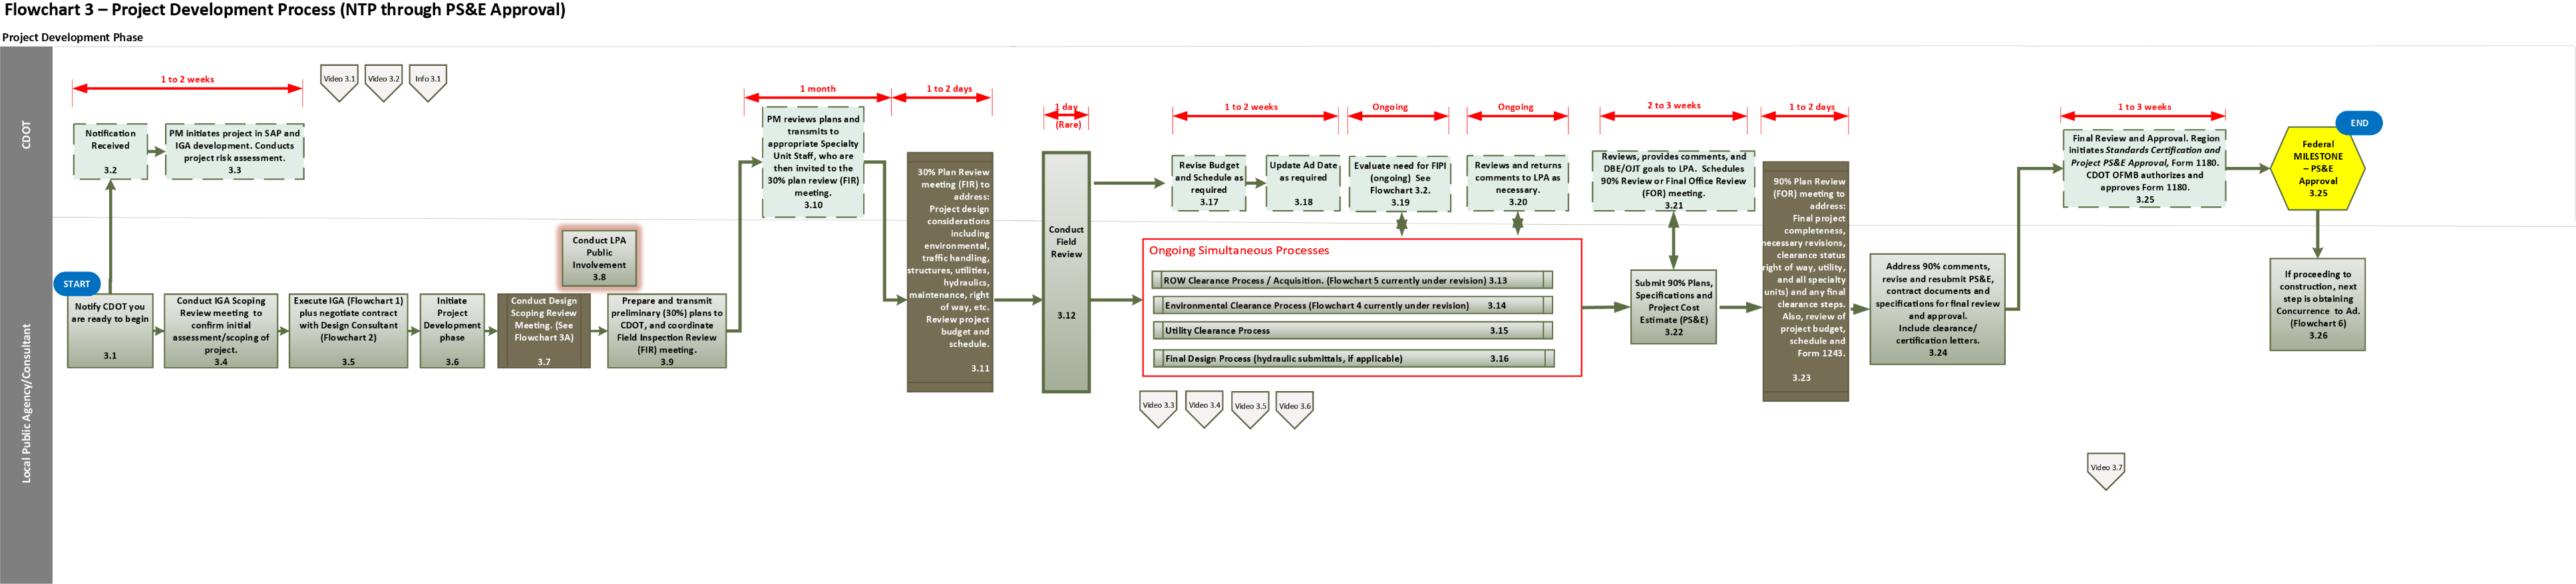 Flowchart 3 project development process ntp through pse approval full flowchart nvjuhfo Gallery